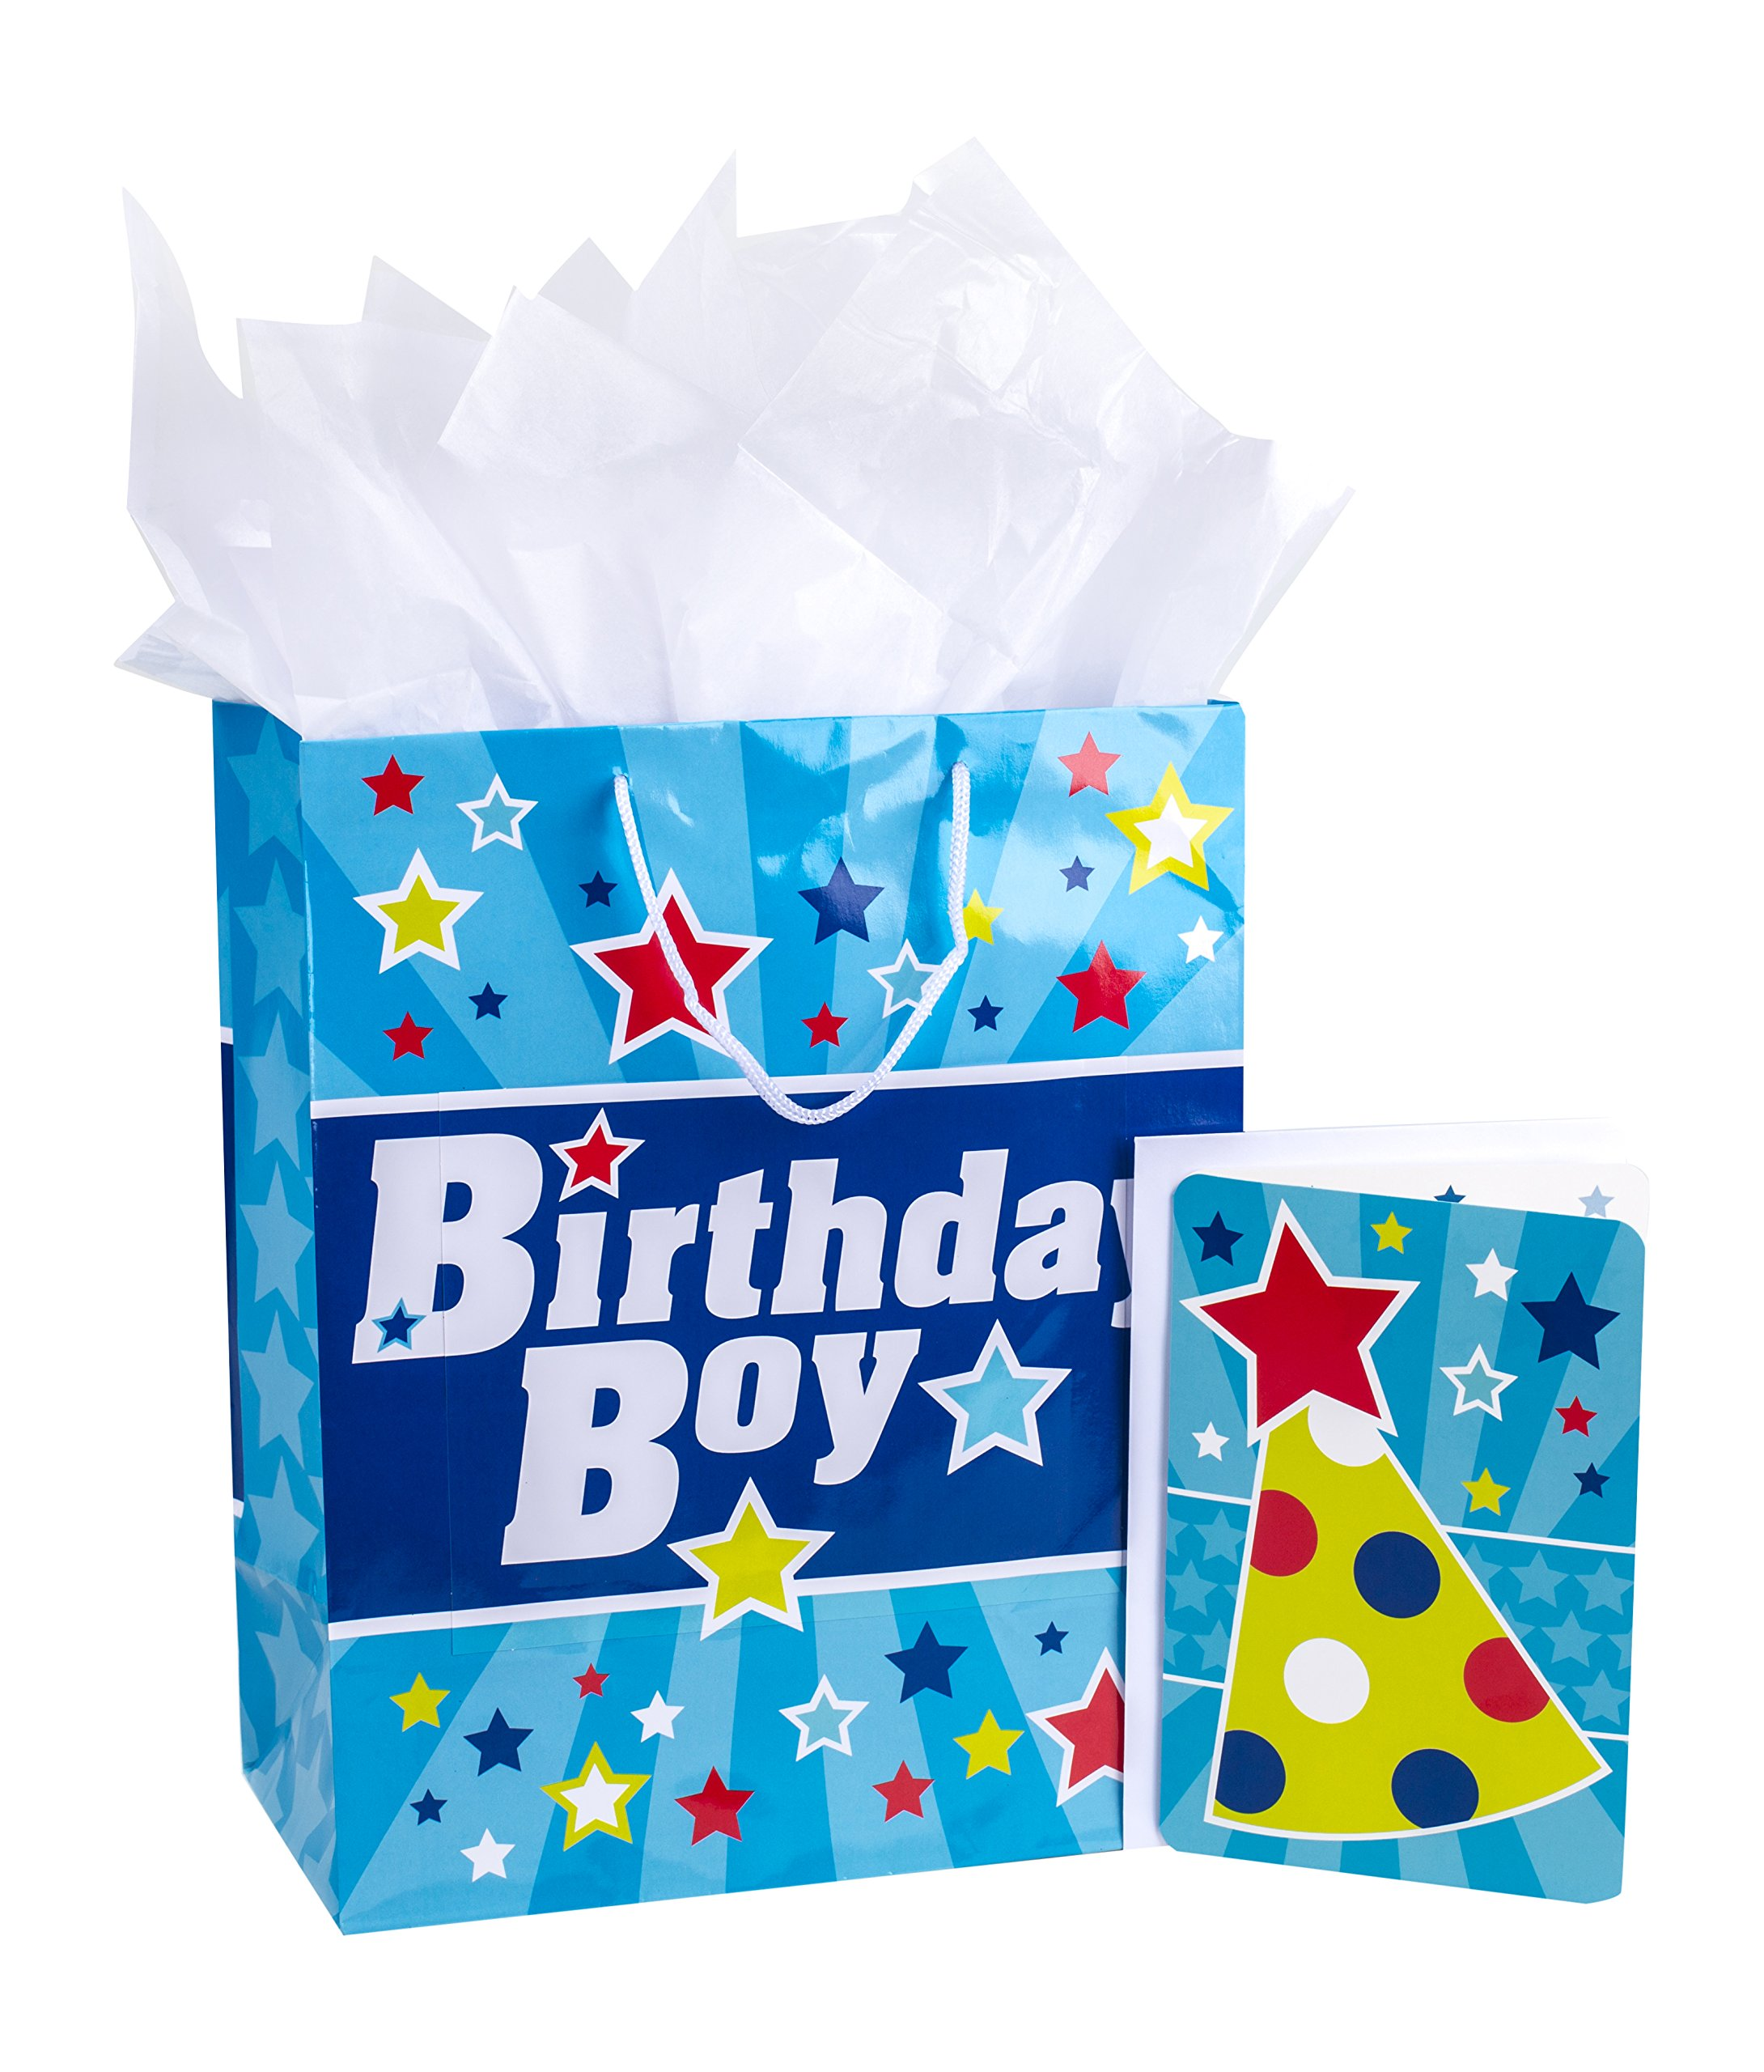 SPECIAL Happy Birthday Boy Loot Bags Gift Party Favor